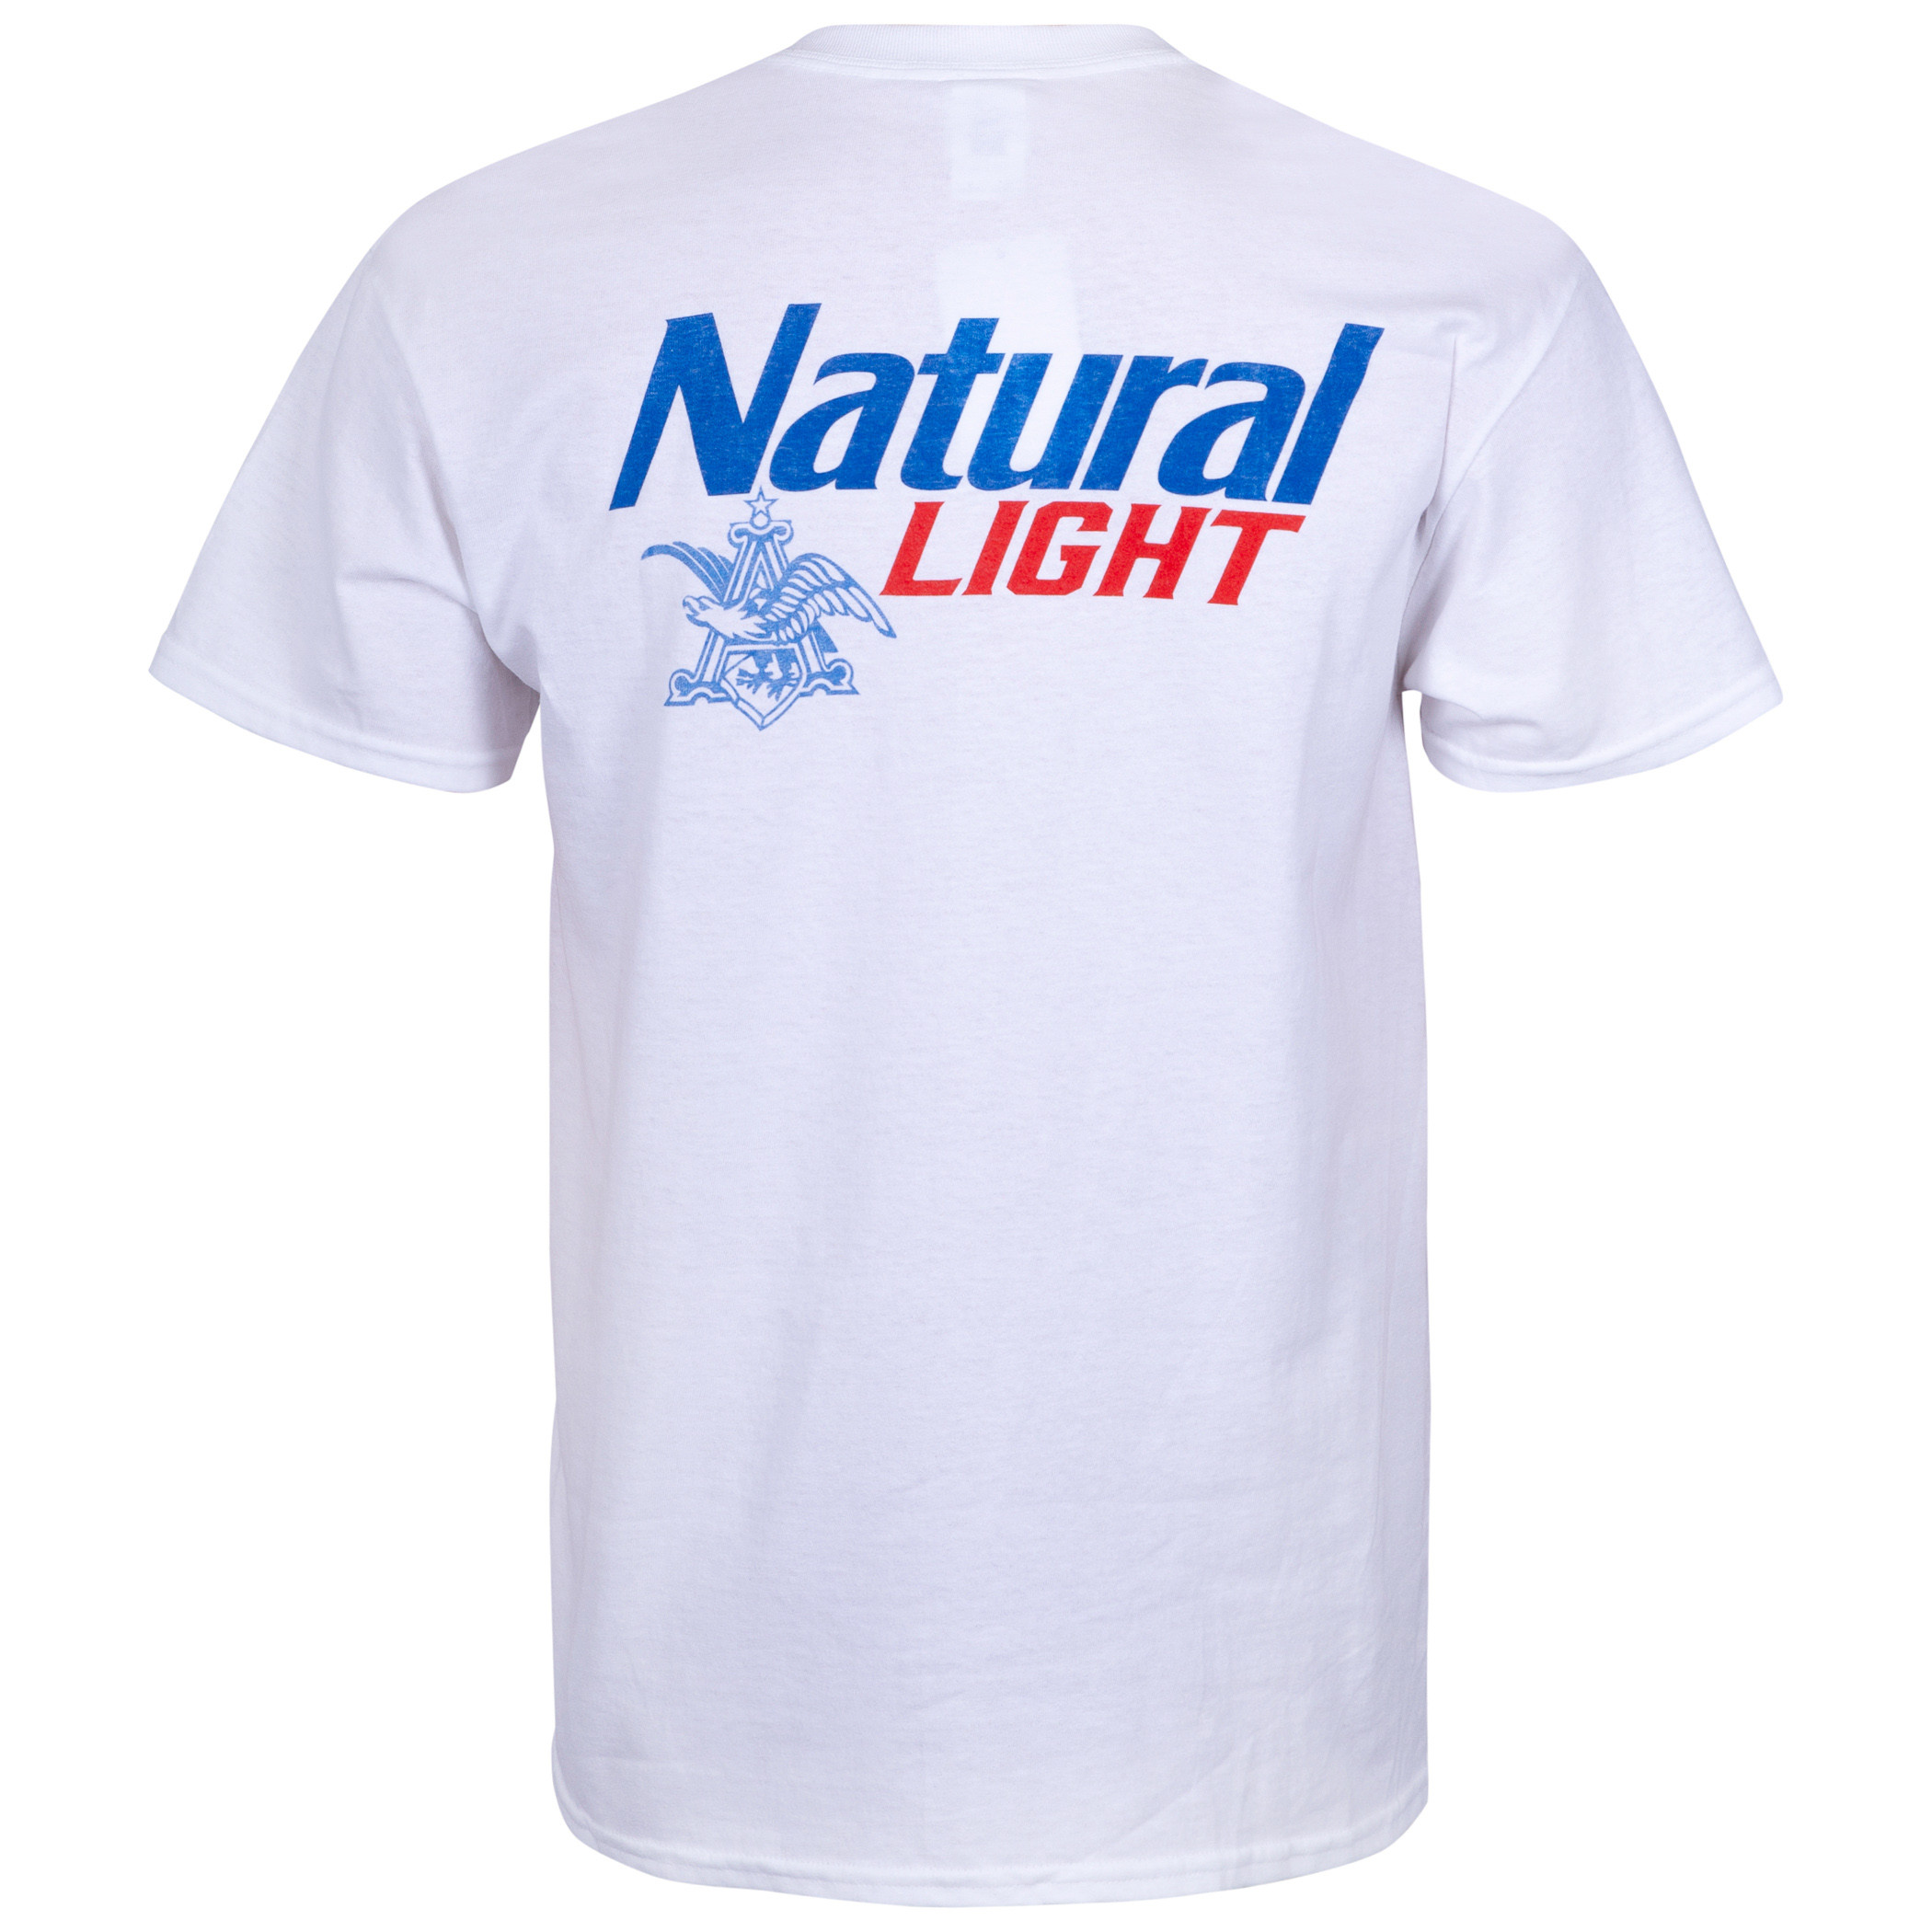 Natural Light White Pocket Tee Shirt